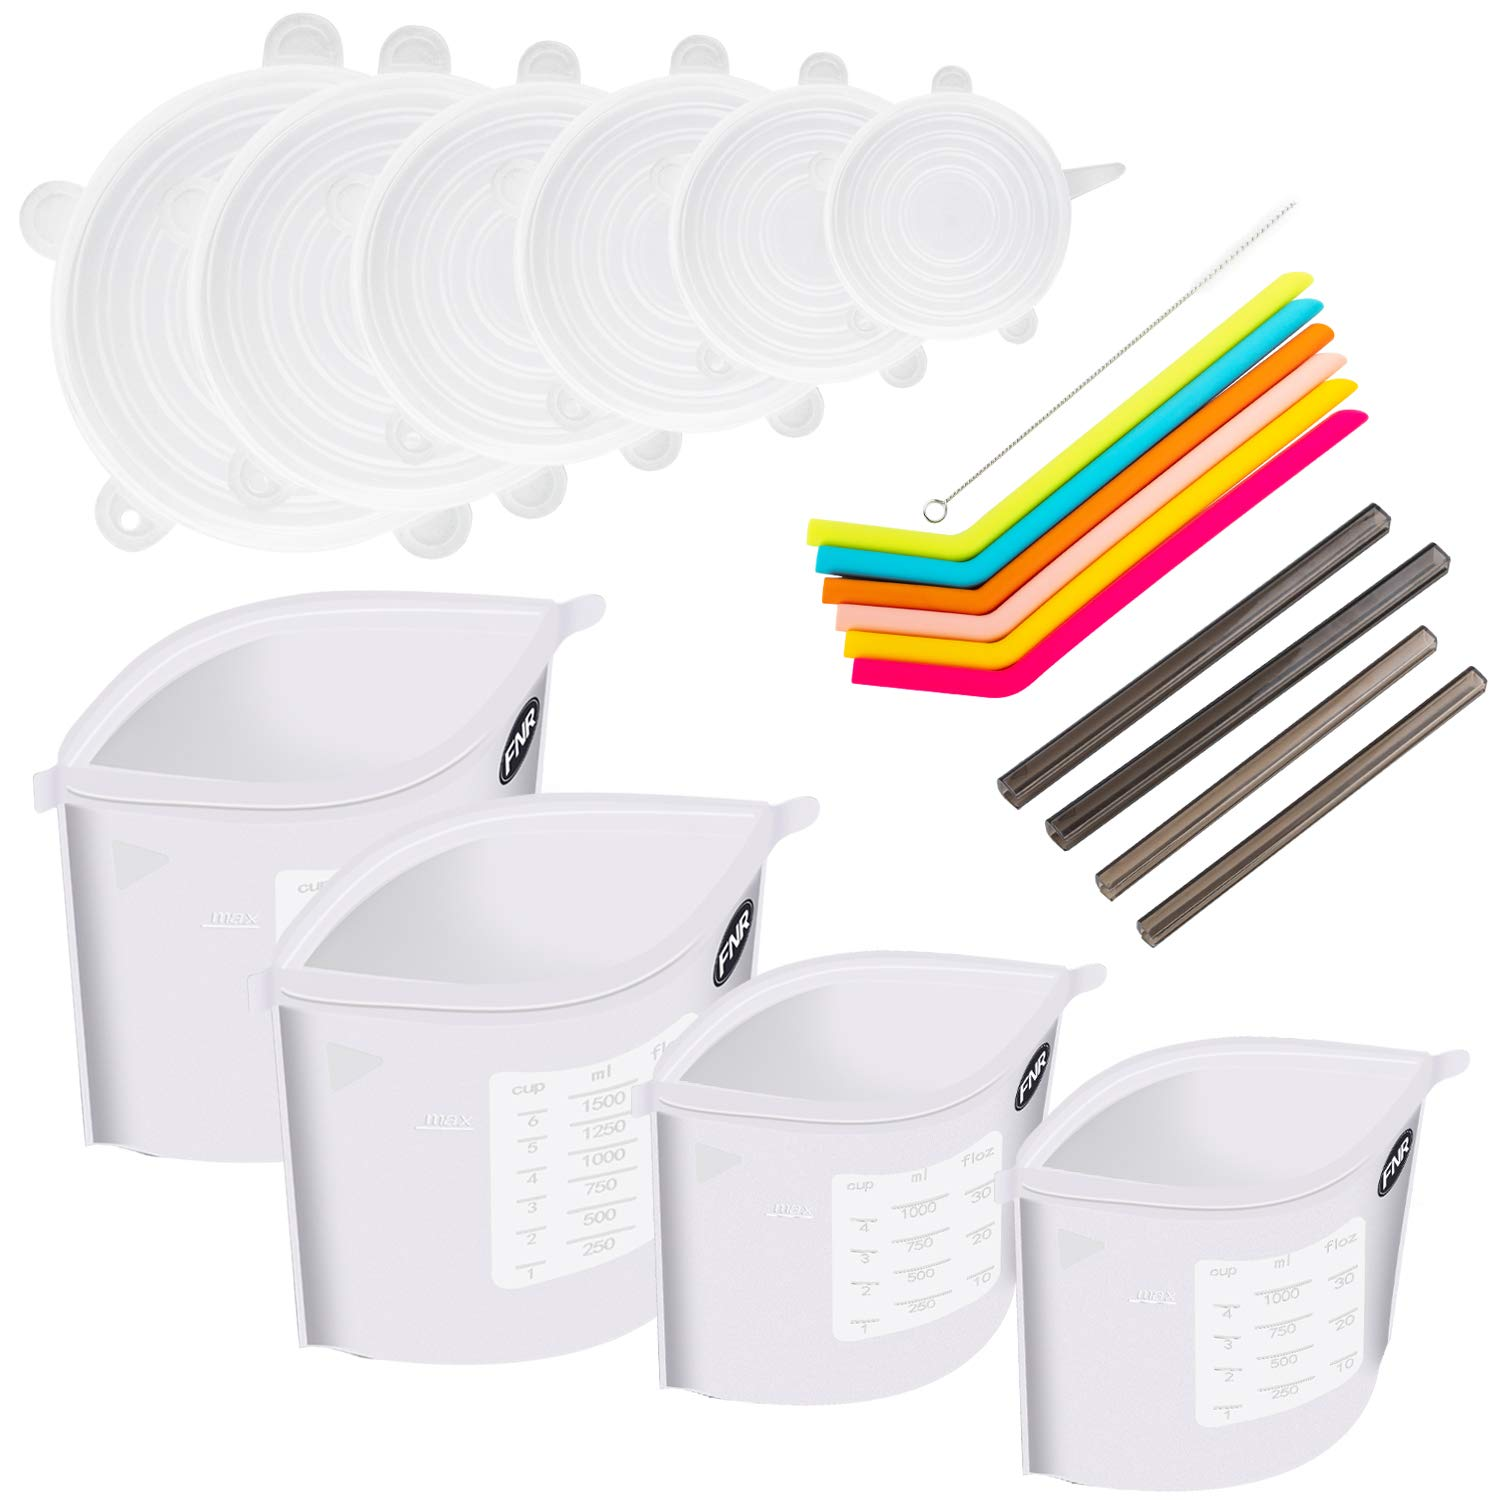 Reusable Clear Silicone Food Bags (4pcs) (2 50 OZ and 2 30 OZ sizes) and Stretch Lids (6 different sizes) and a bonus set of 6 Reusable Jumbo Silicone Straws. Bag for Freezer, Cooking, Sous Vide.